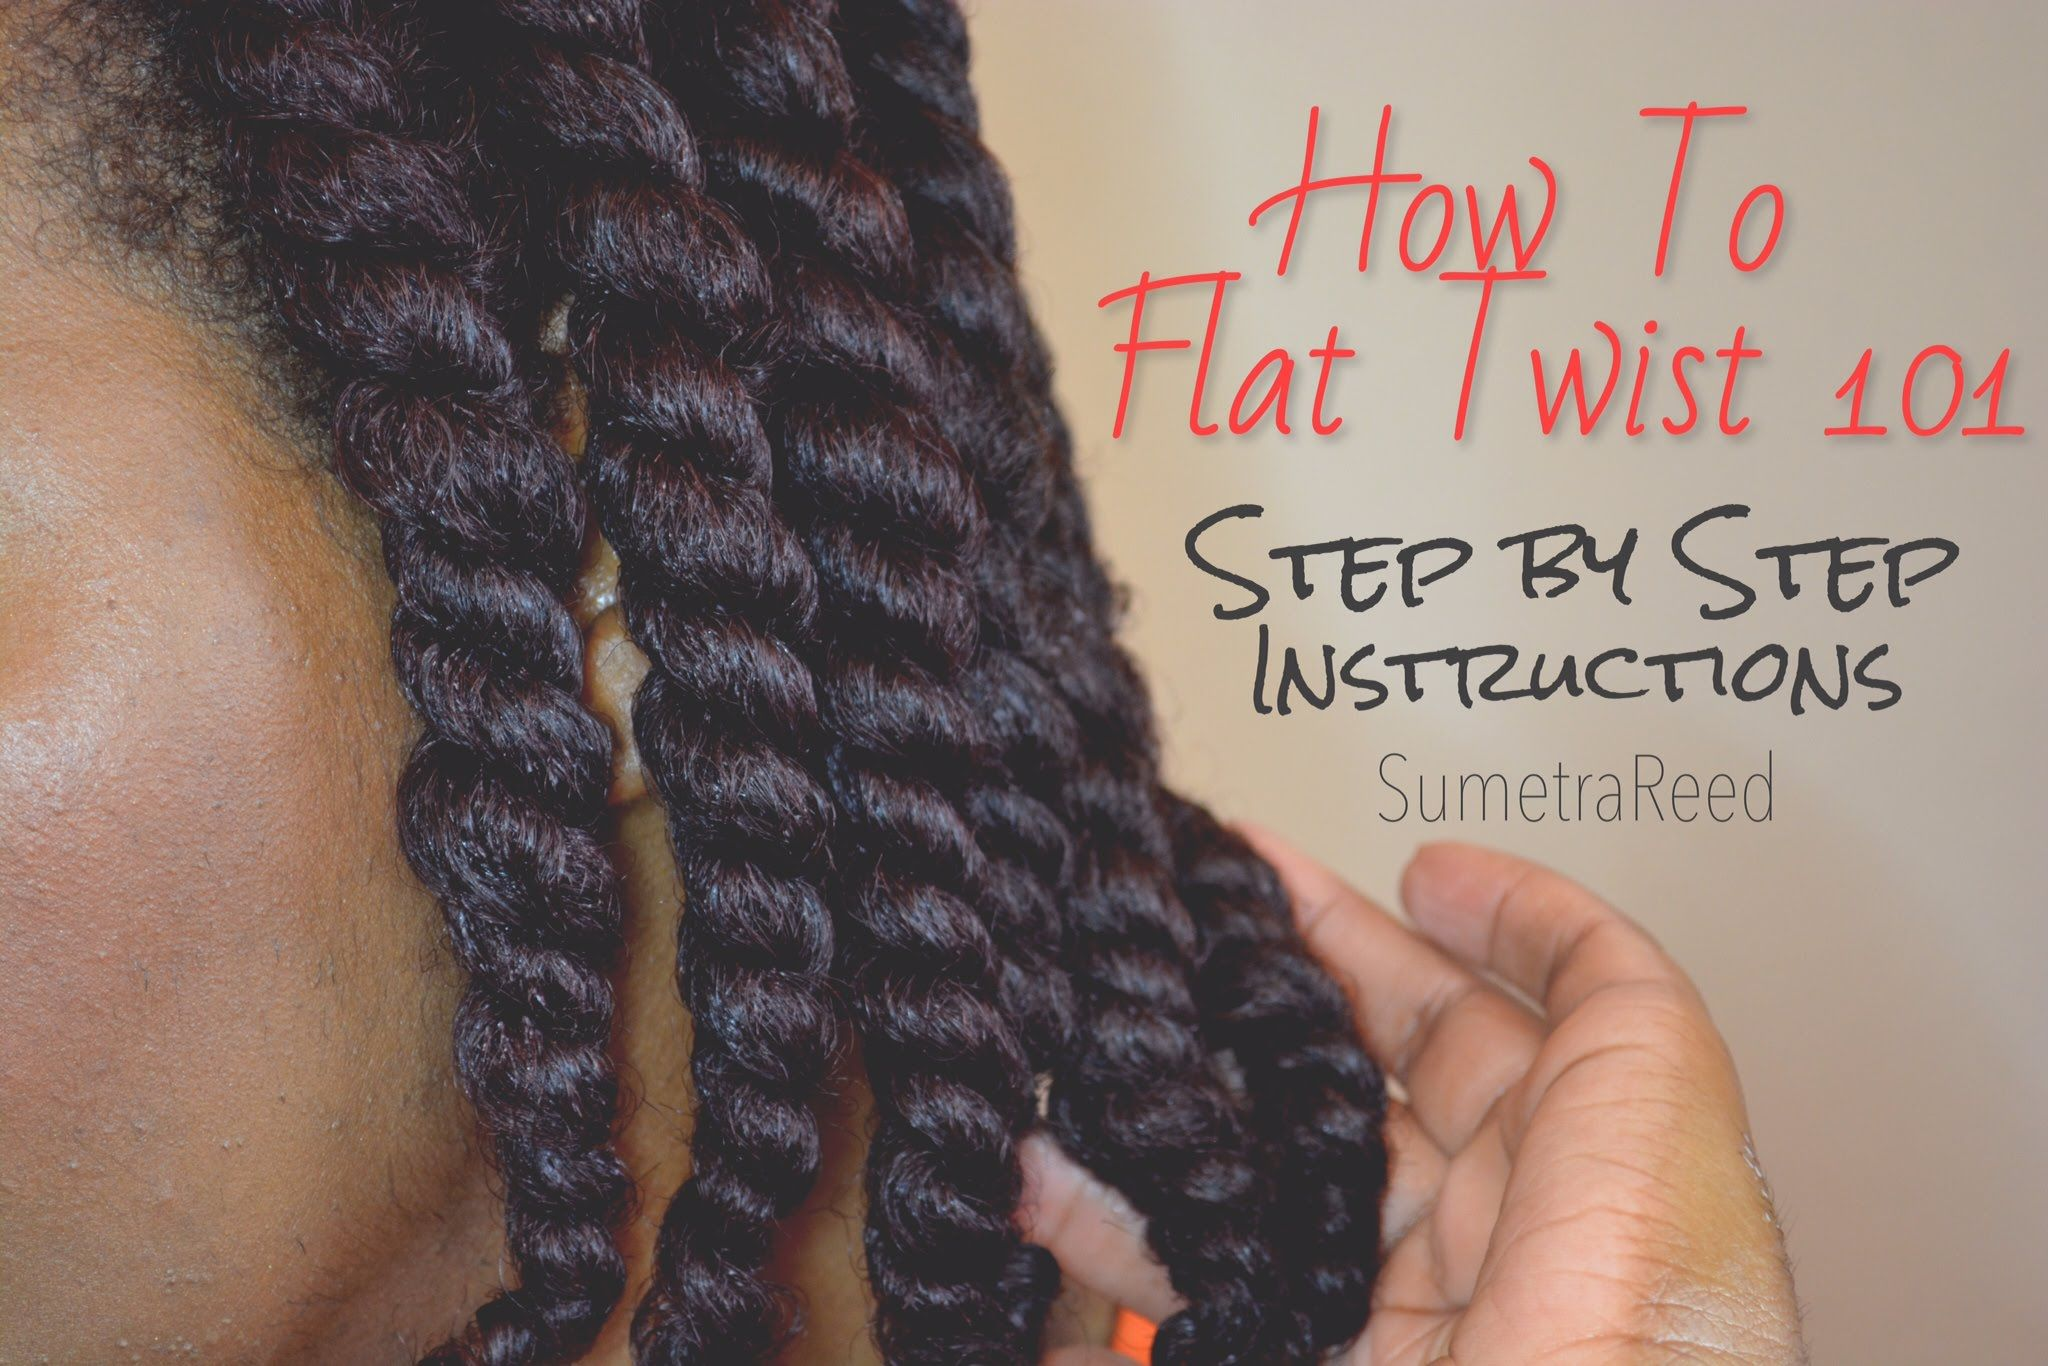 62 how to flat twist 101 step by step my natural hair 62 how to flat twist 101 step by step baditri Images